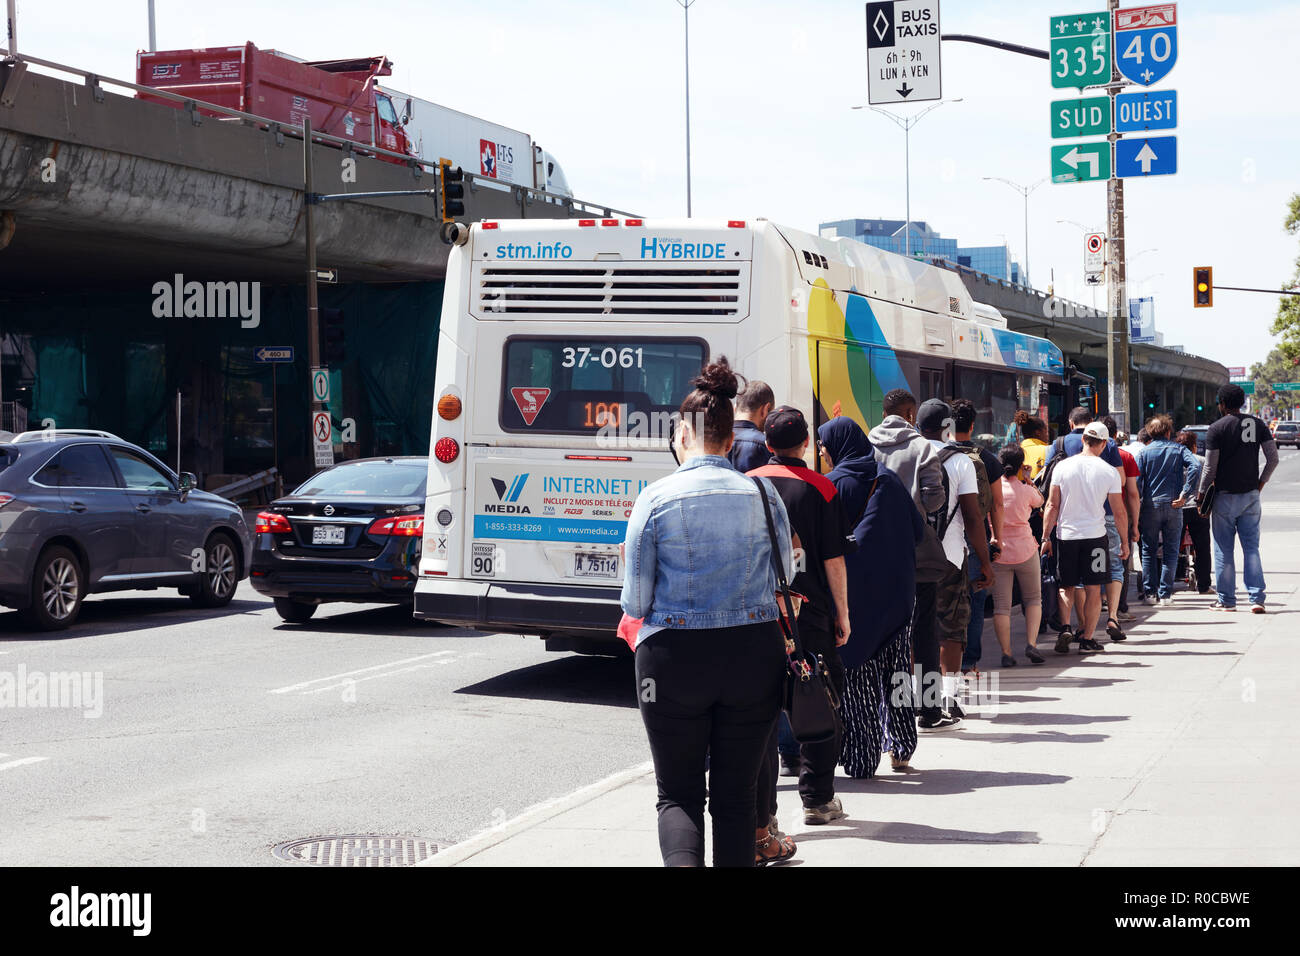 People waiting in queue on the public bus station to get on the bus in Montreal, Quebec, Canada. Stock Photo